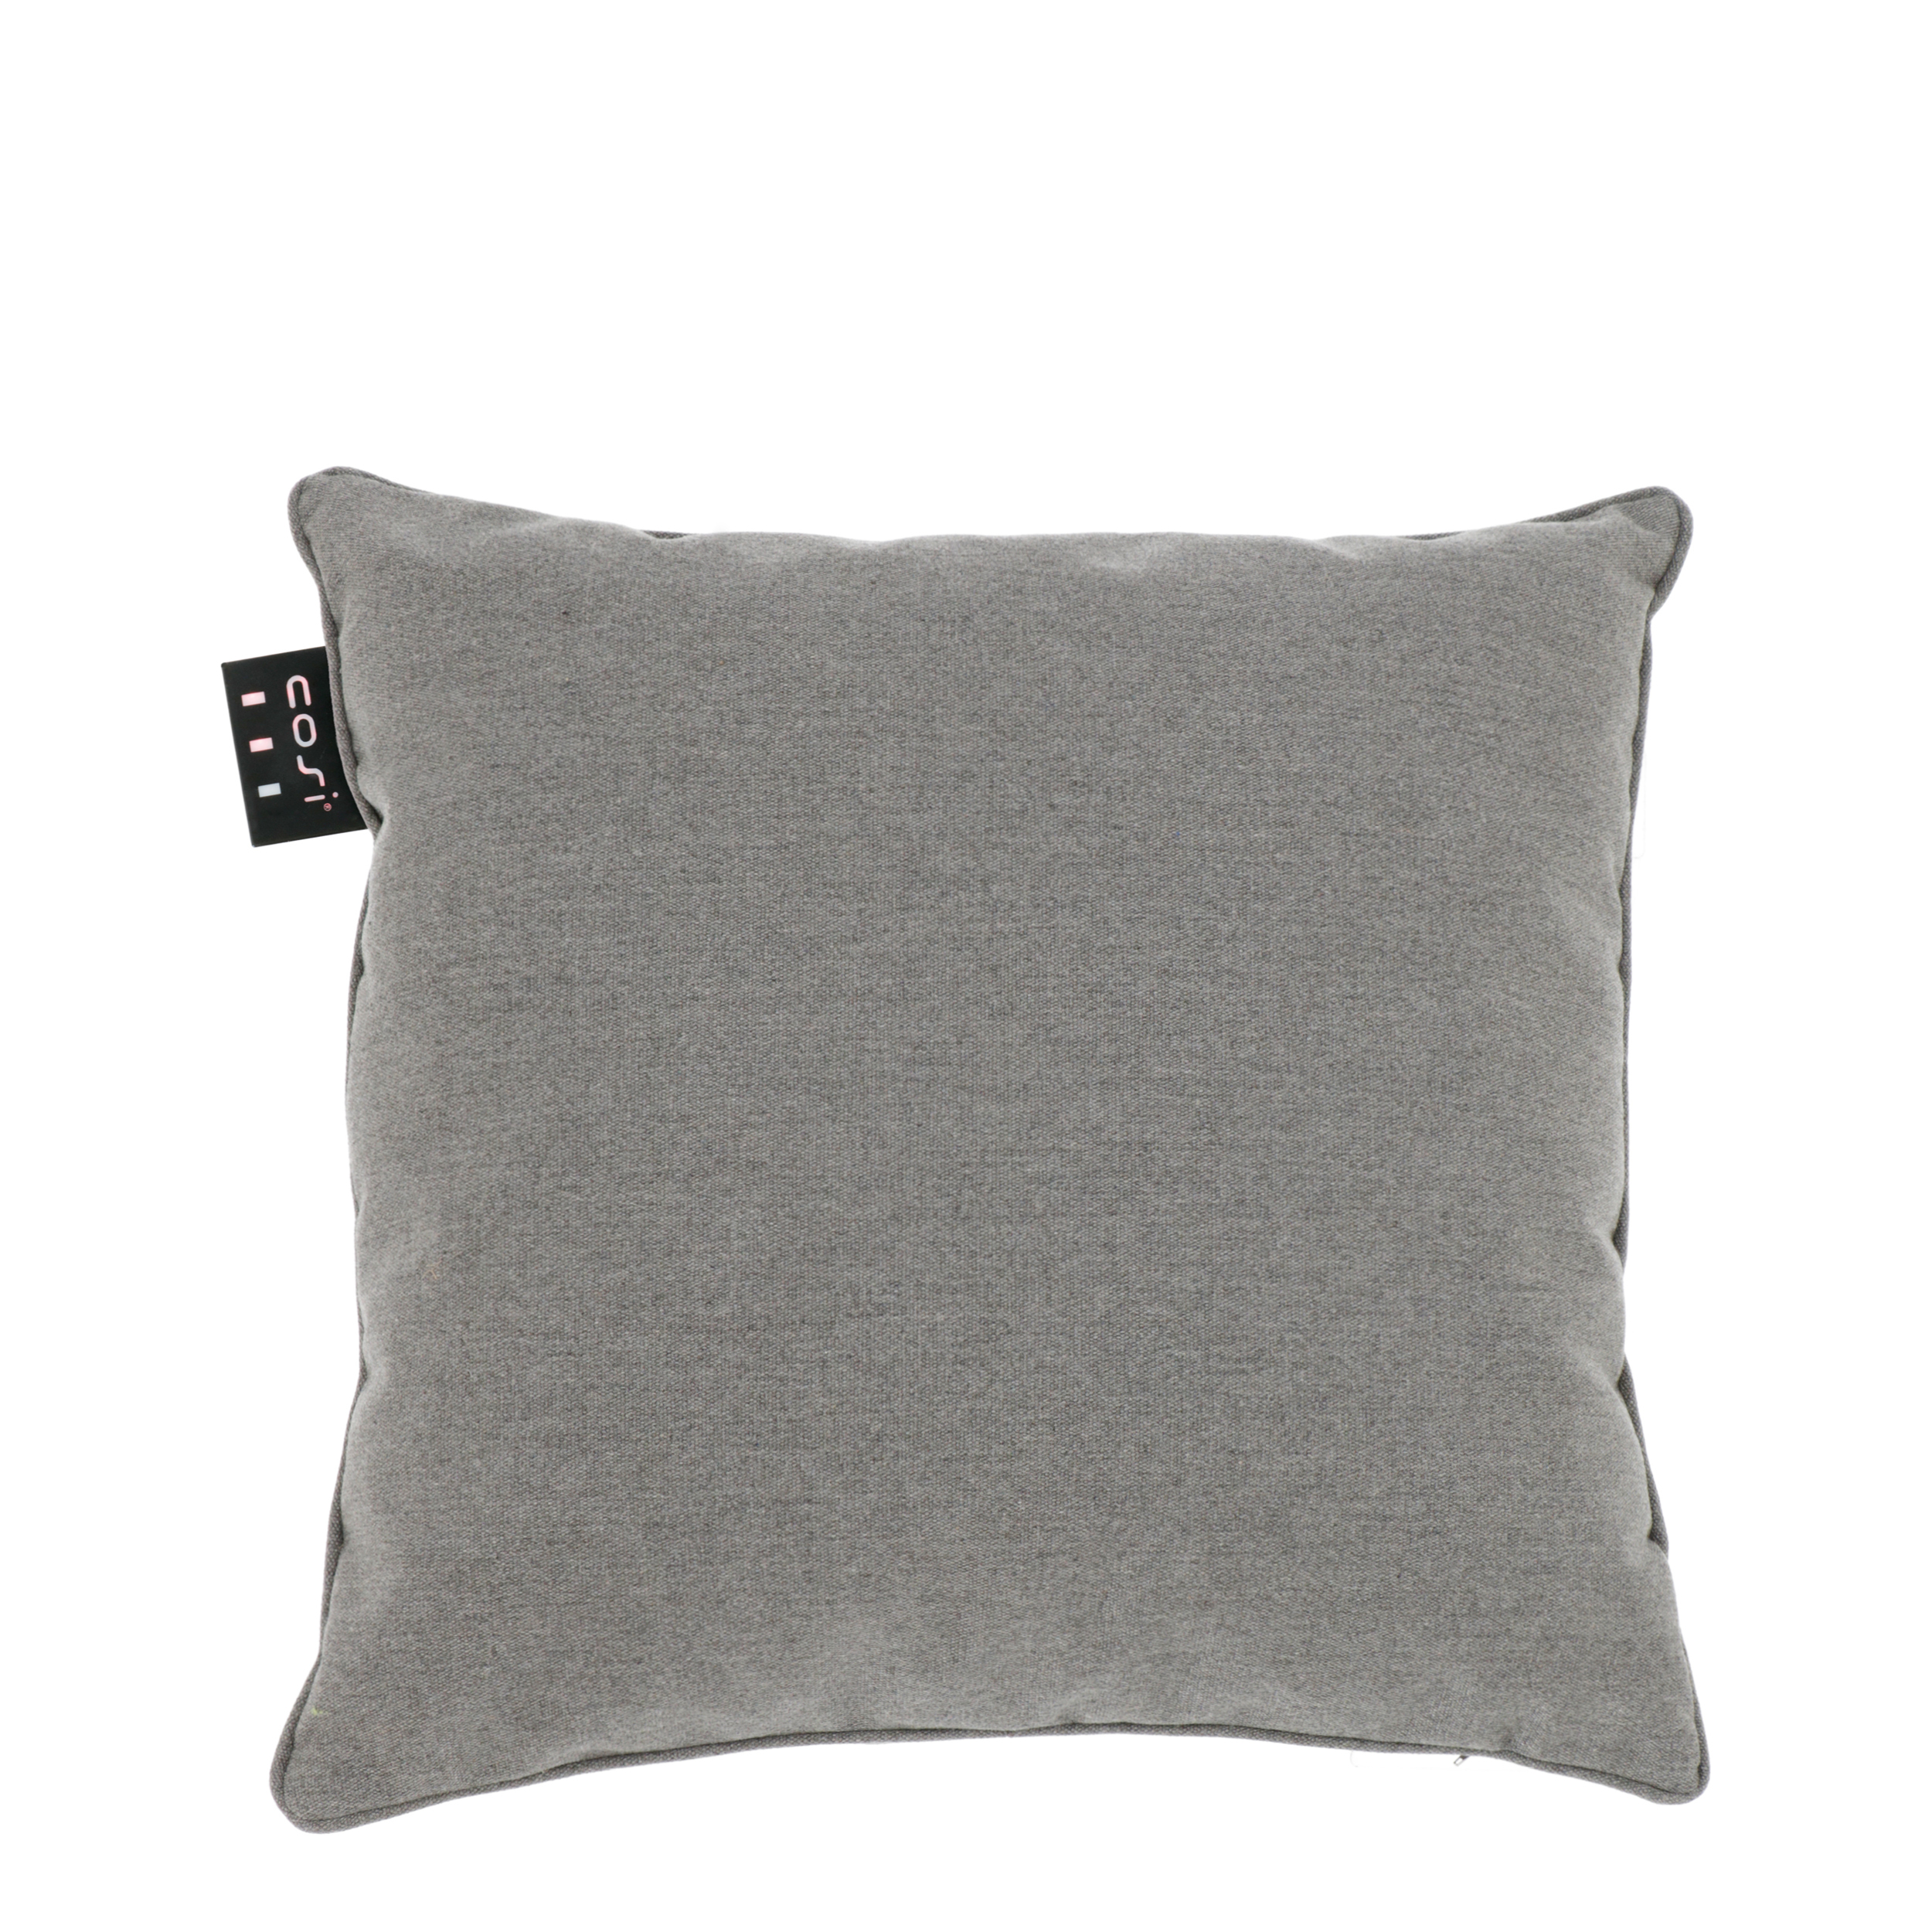 Cosipillow m/varme – solid 50x50cm